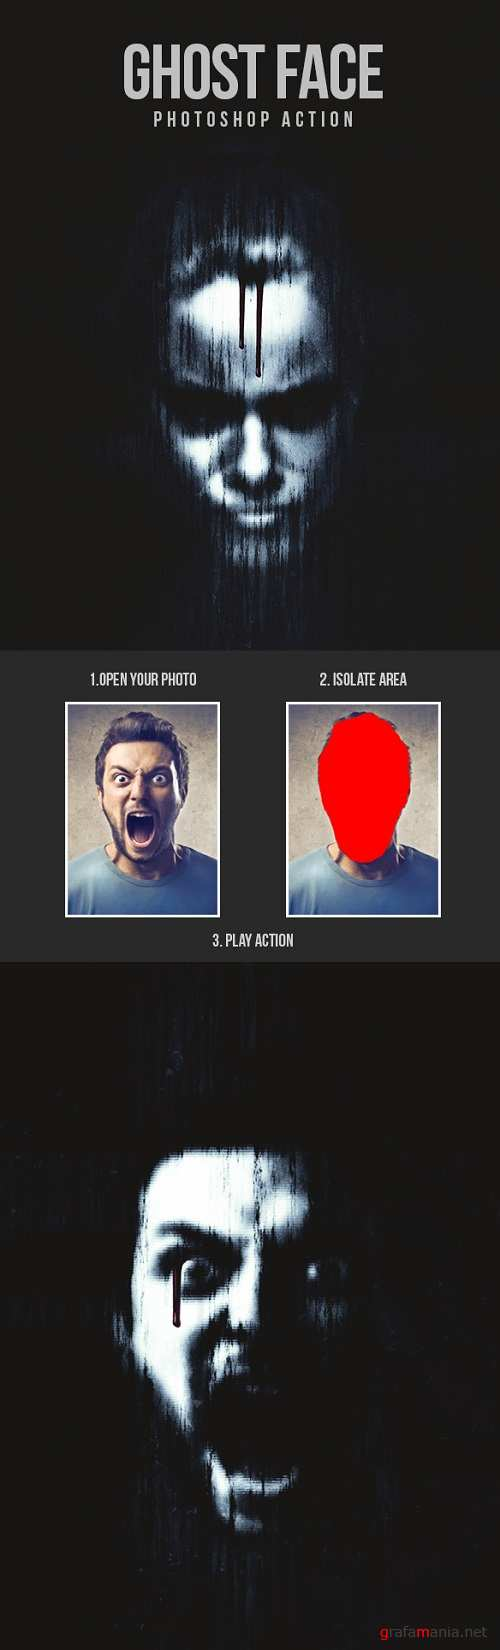 Ghost Face - Photoshop Action 20862294